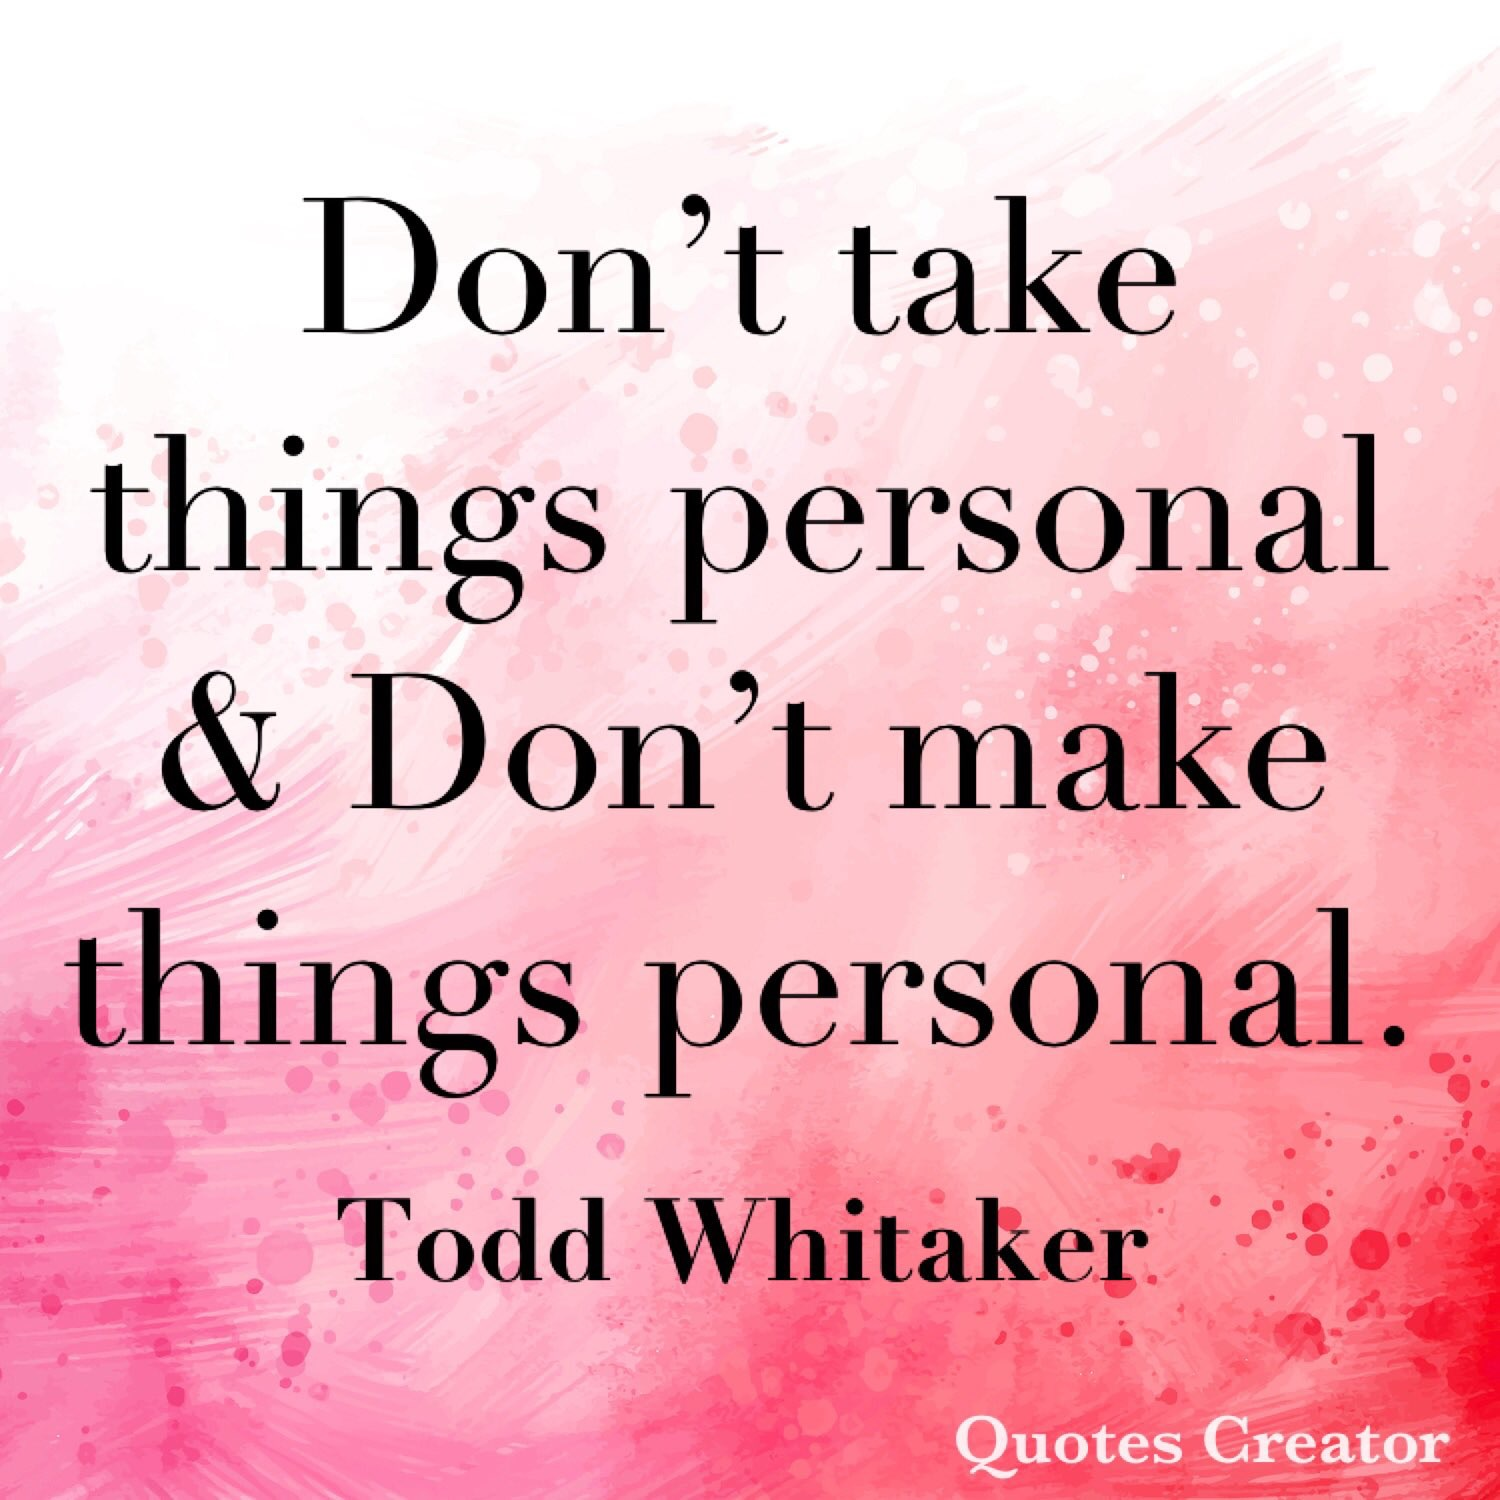 Personnal quote